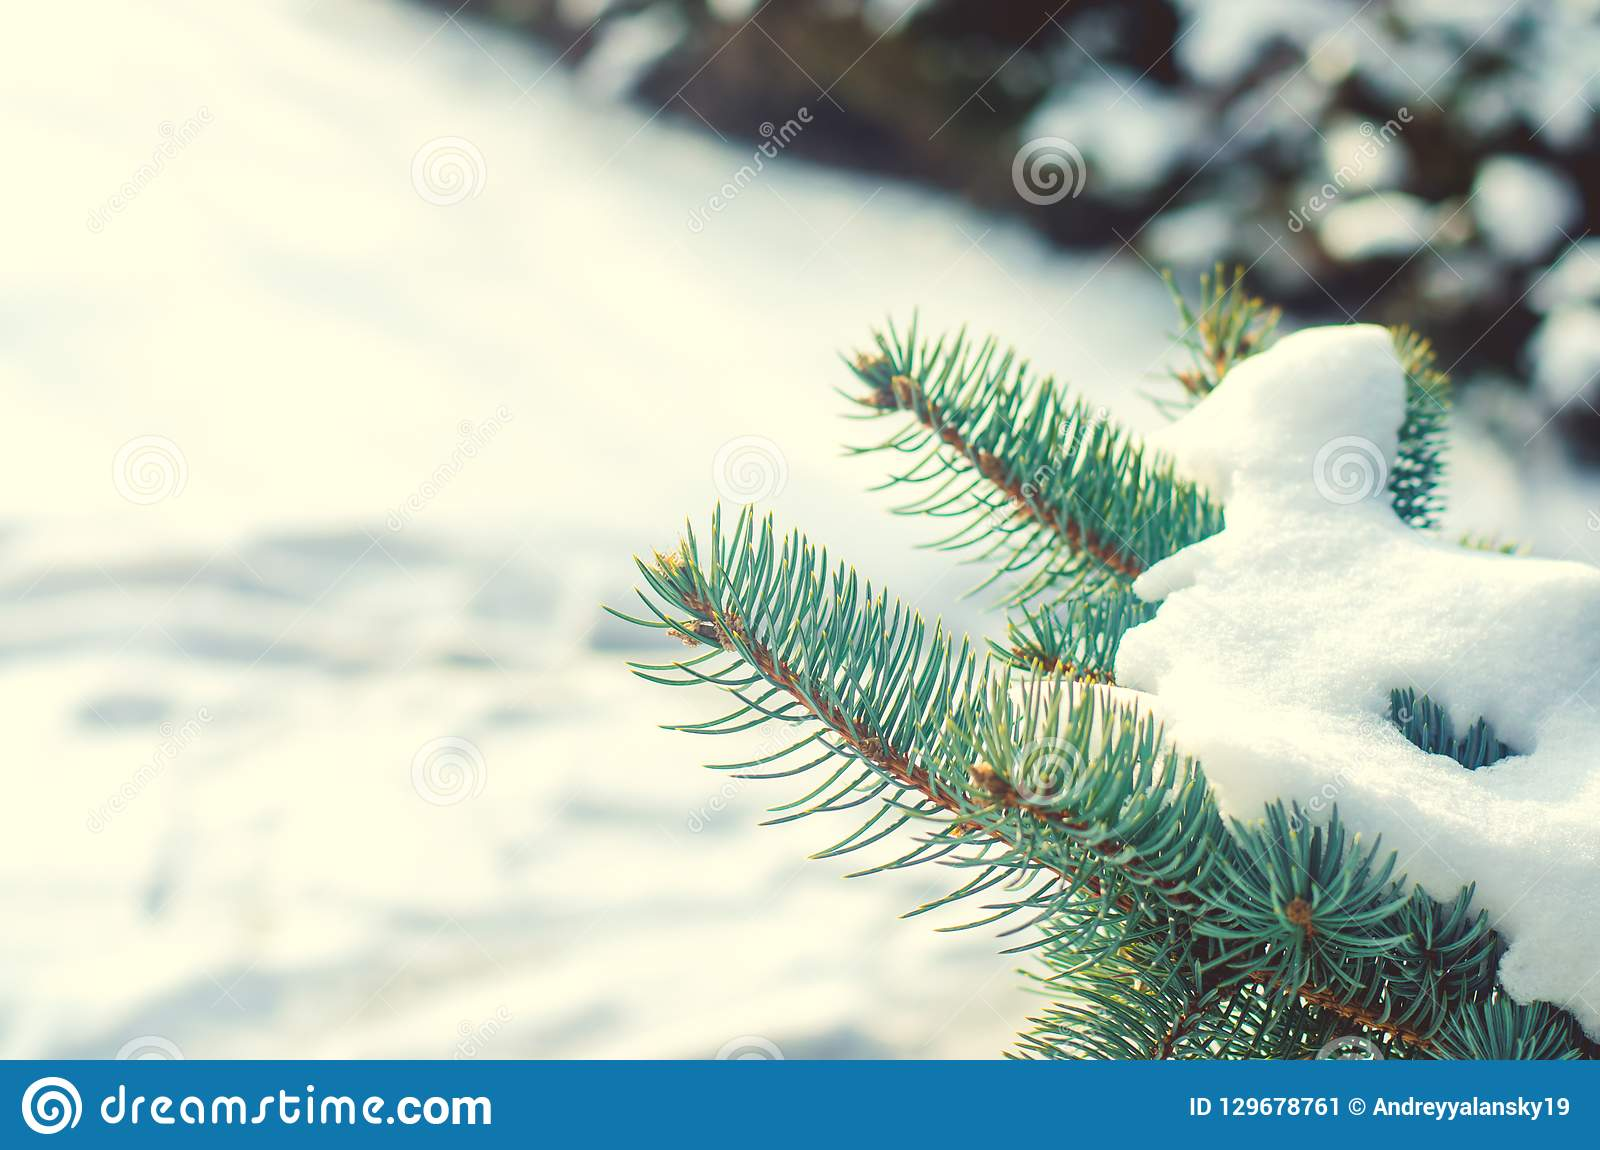 An Evergreen Christmas.Branches Of An Evergreen Christmas Tree In The Snow In A